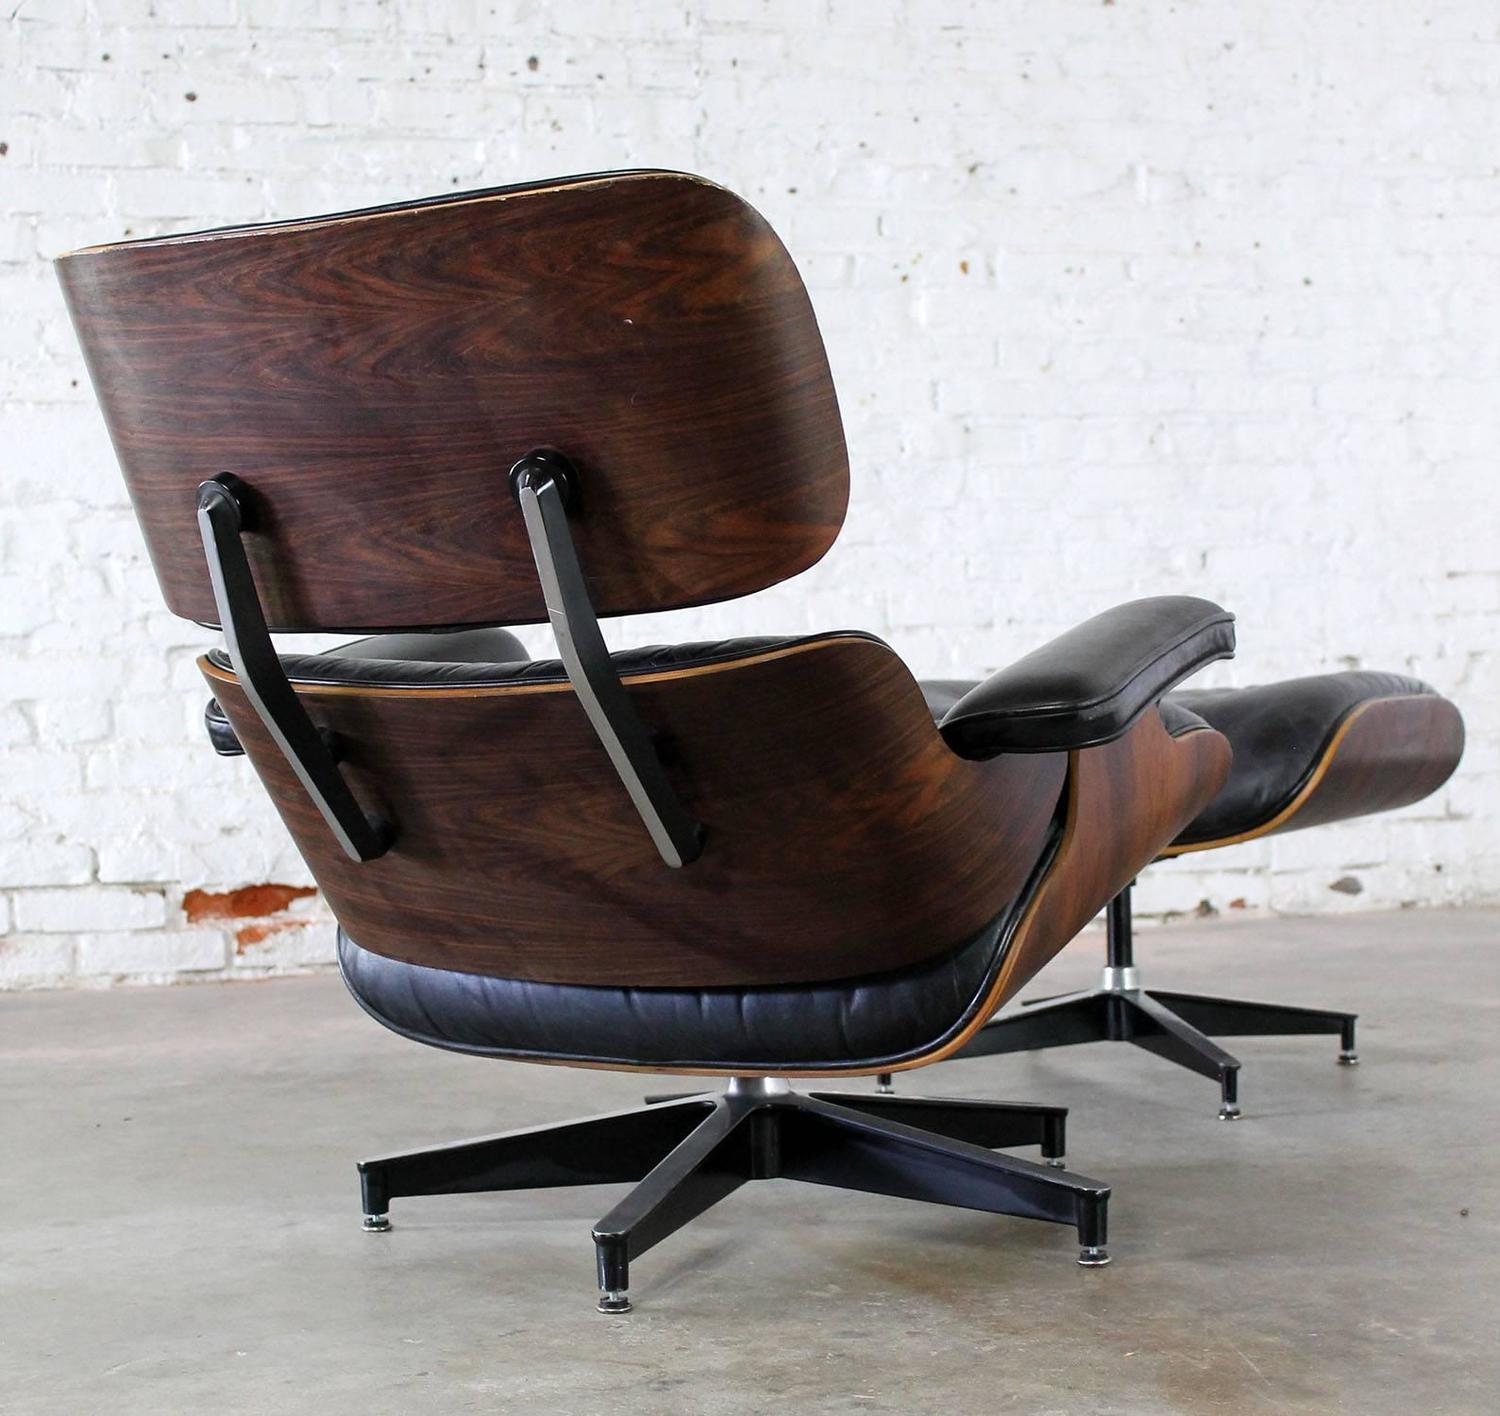 Vintage Herman Miller Eames Lounge Chair and Ottoman in Black Leather and Ros